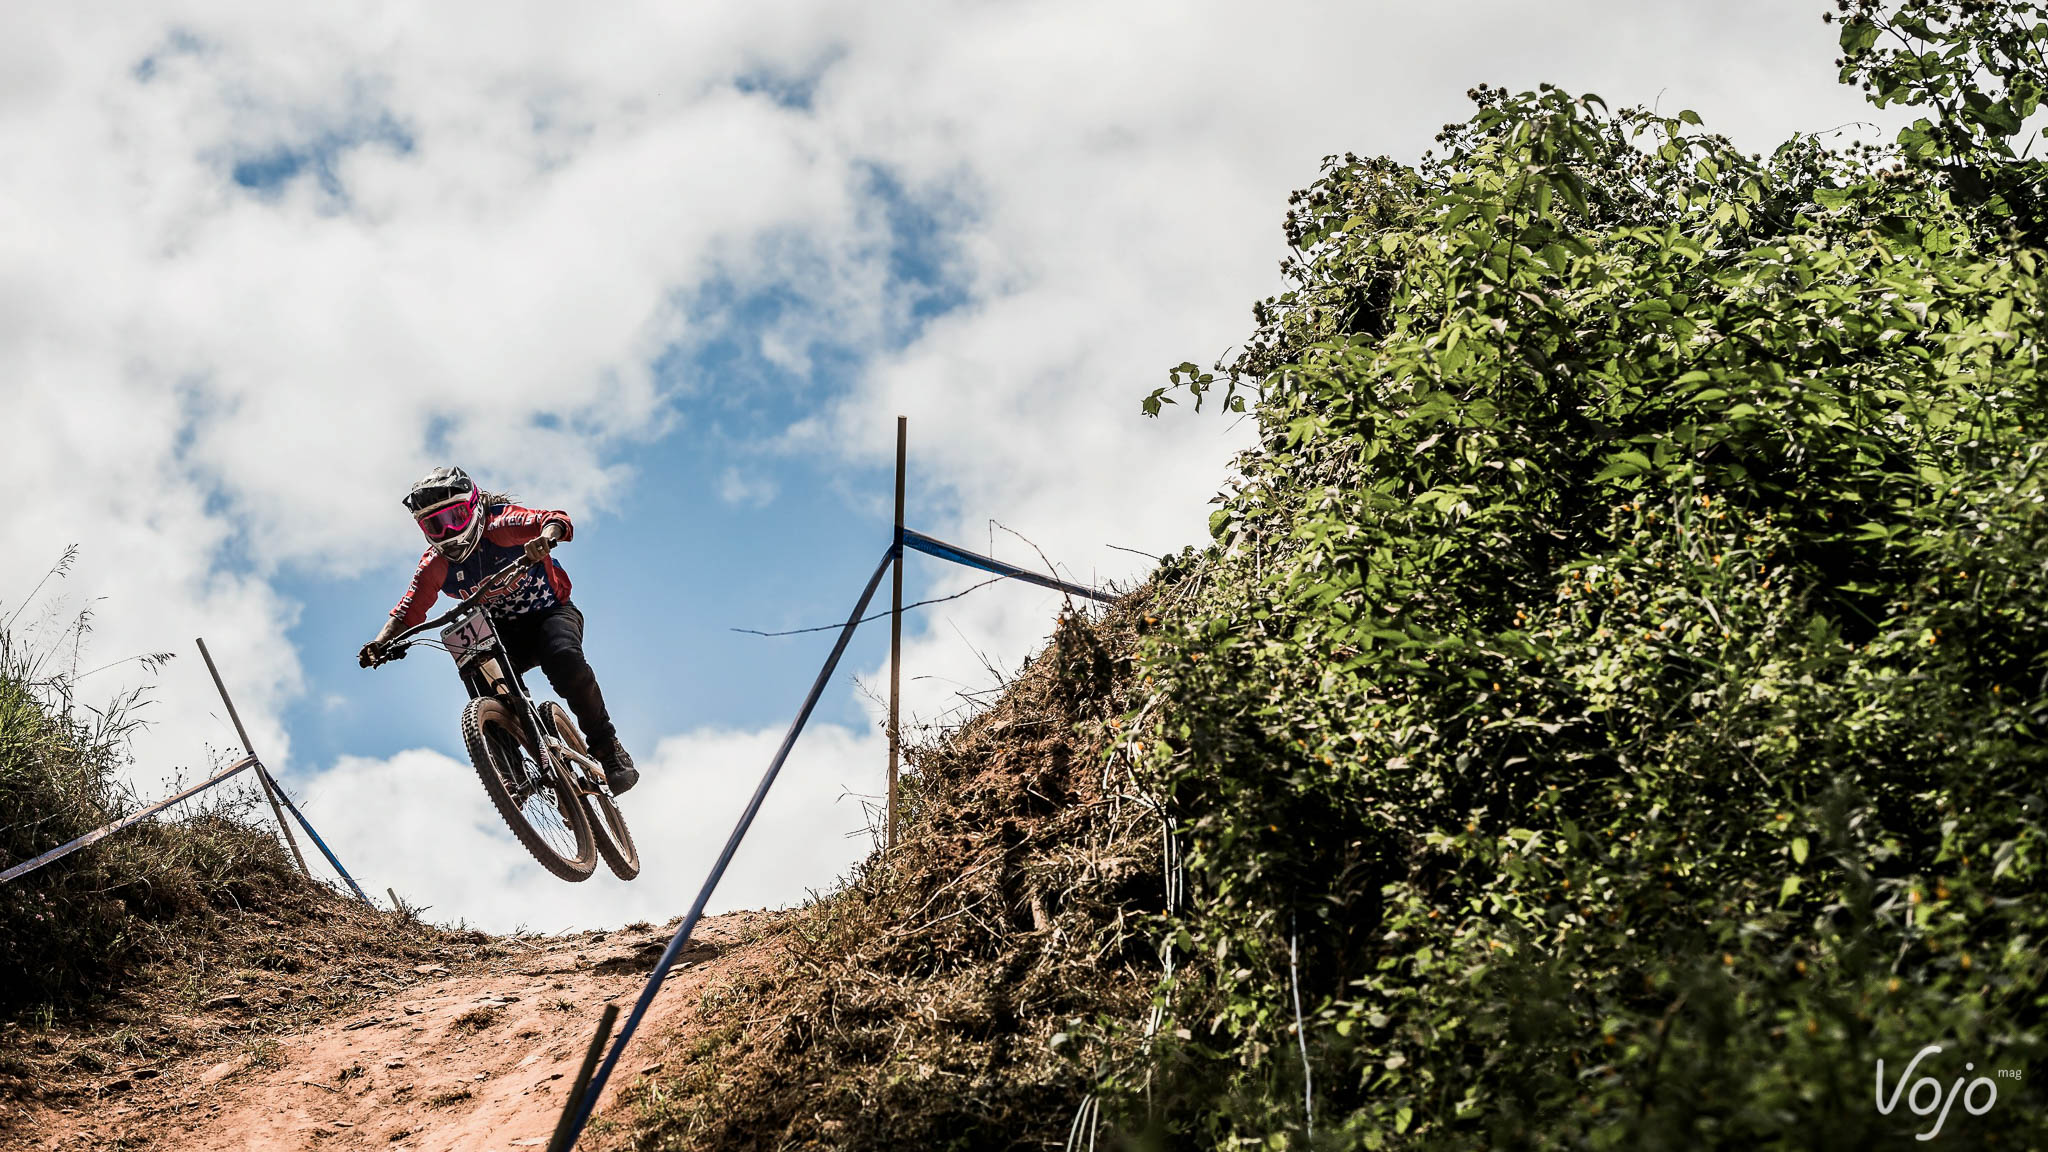 World_Cup_DH_men_homme_Windham_2015_Copyright_Dobslaff_VojoMag-1-2